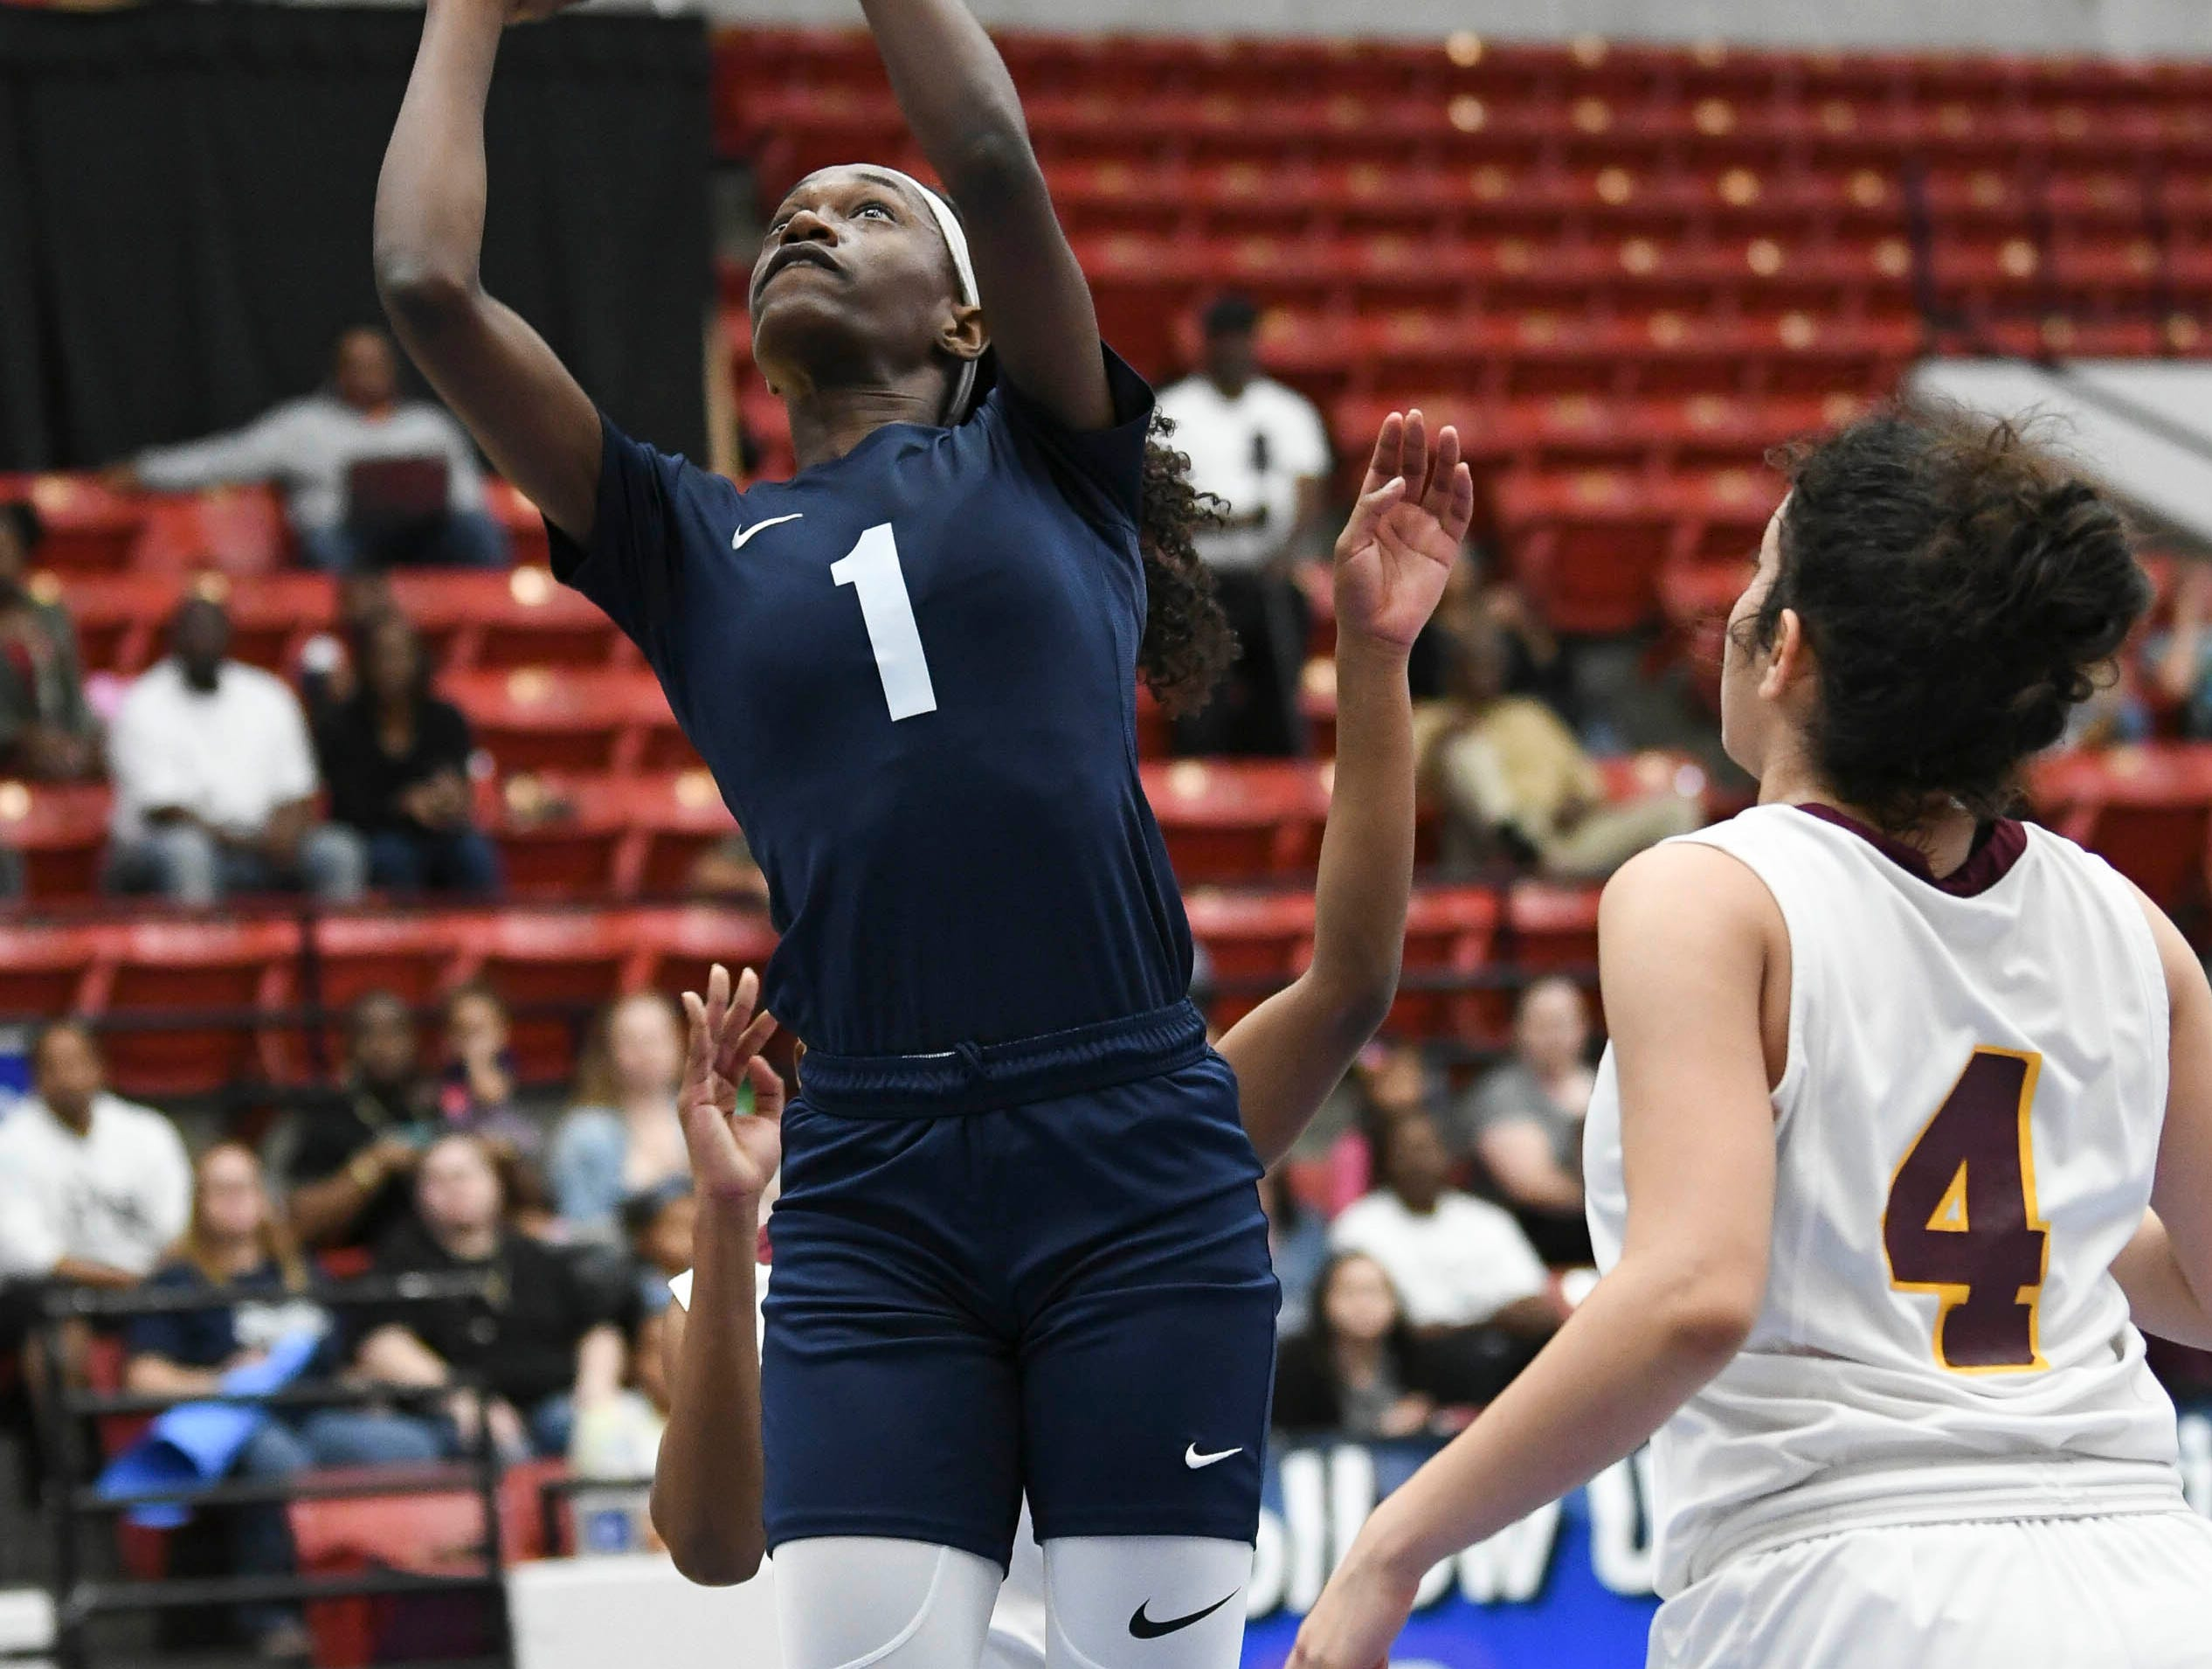 Jayla Johnson of Florida Prep takes a shot during Tuesday's Class 2A state championship game.